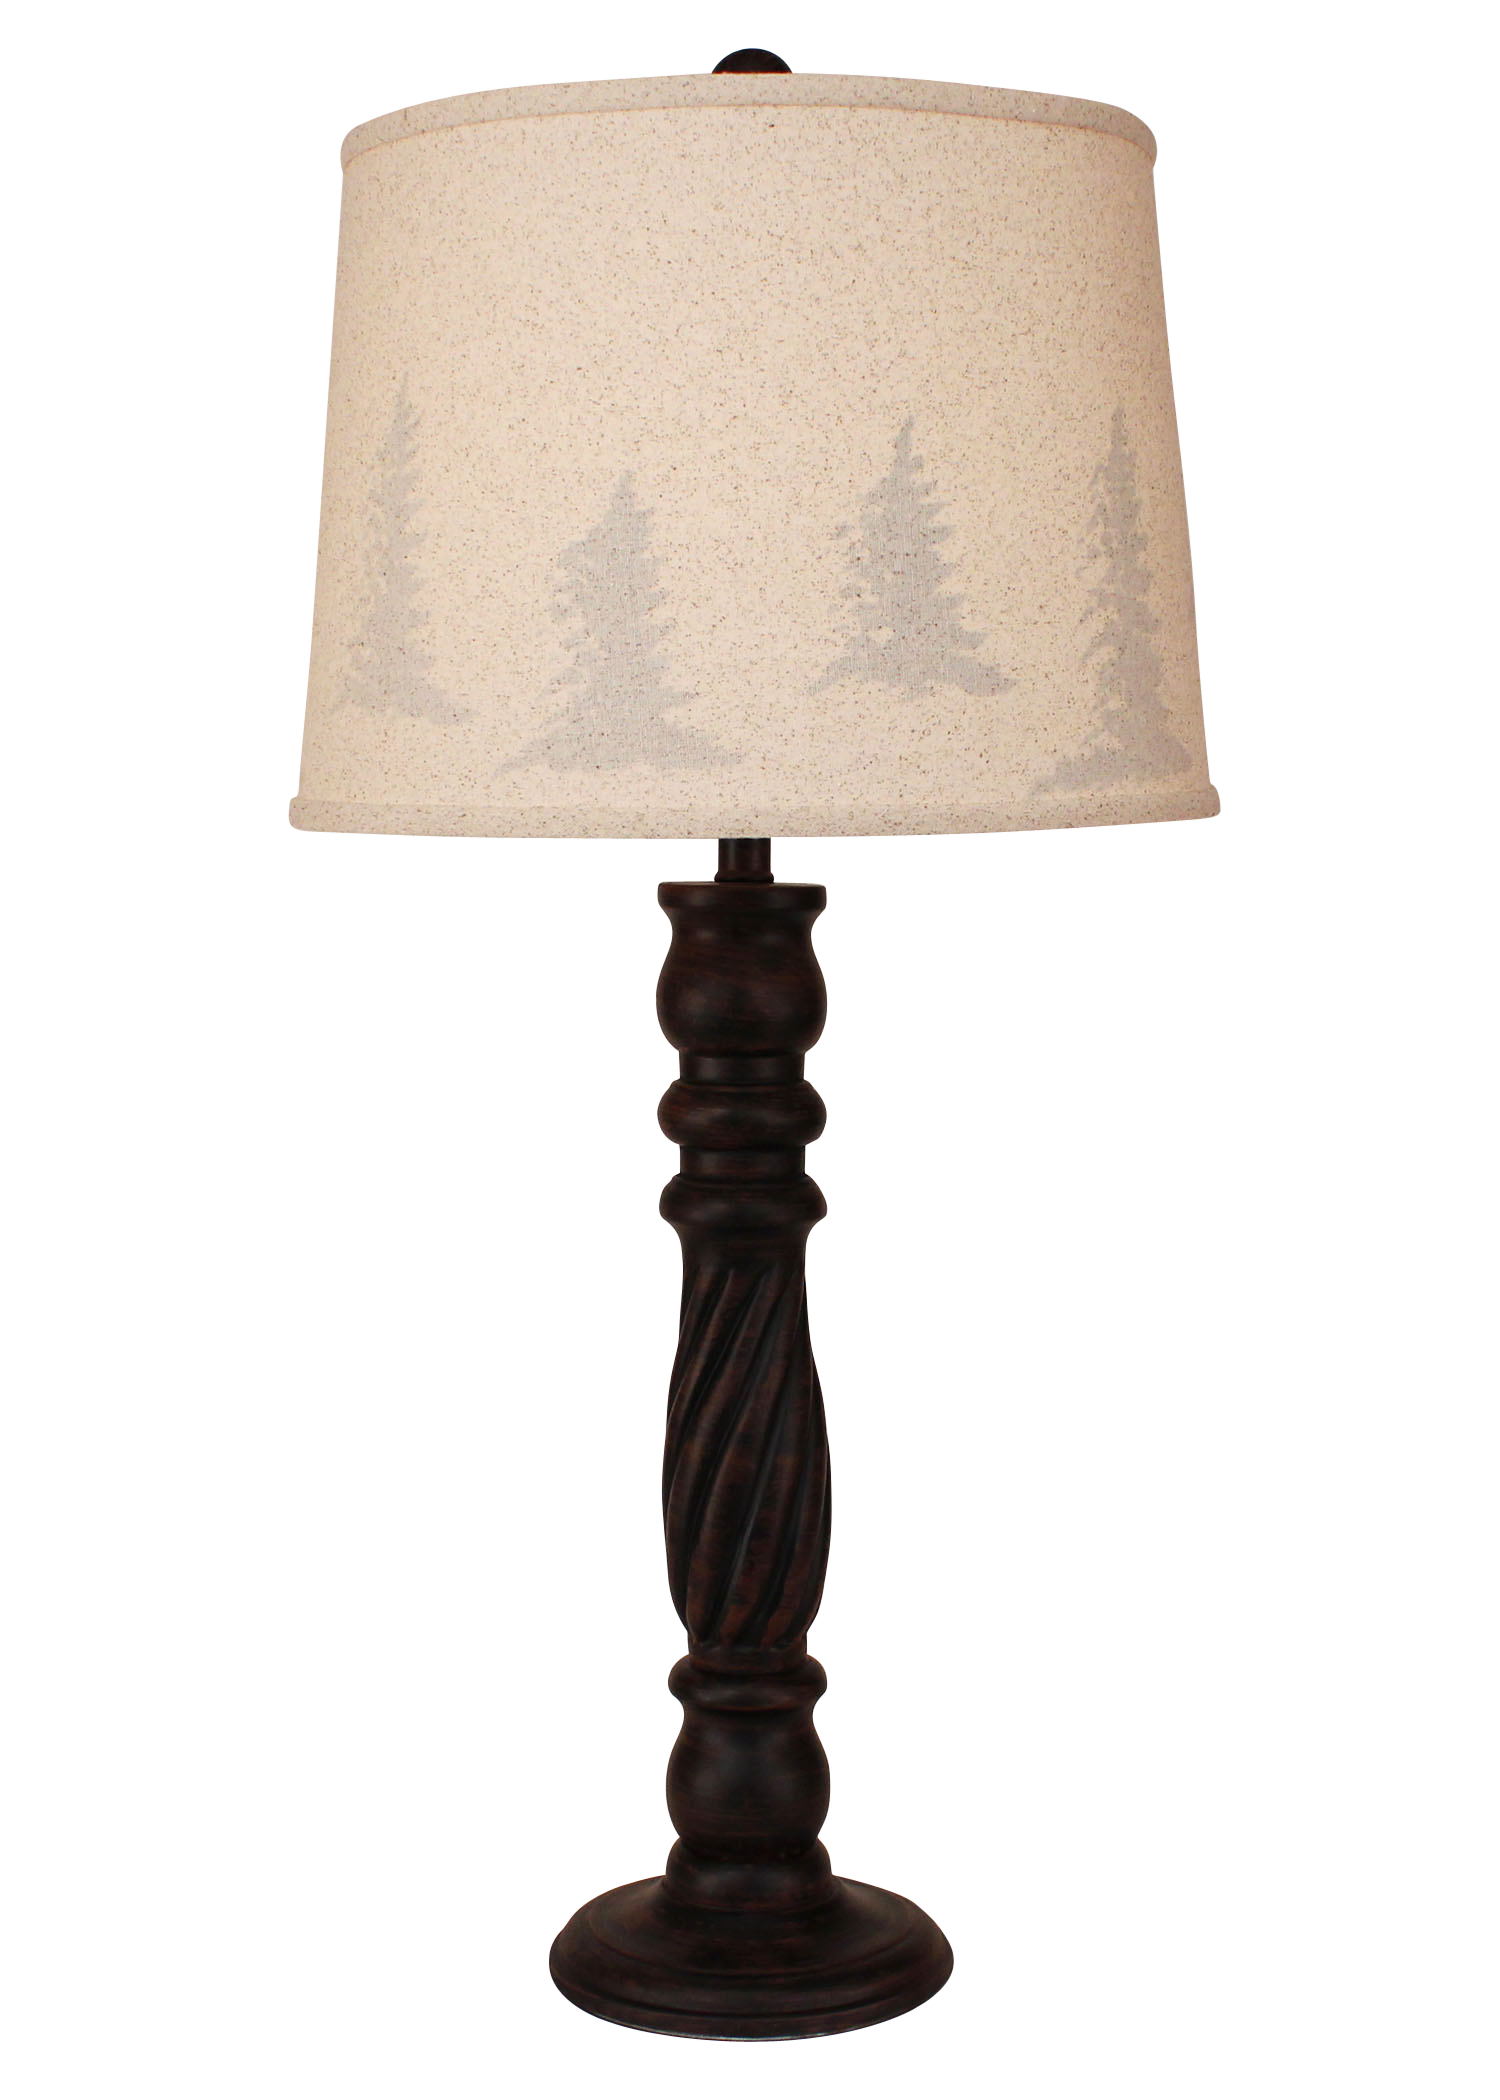 Burnt Sienna Swirl Table Lamp- Tree Silhouette Shade - Coast Lamp Shop